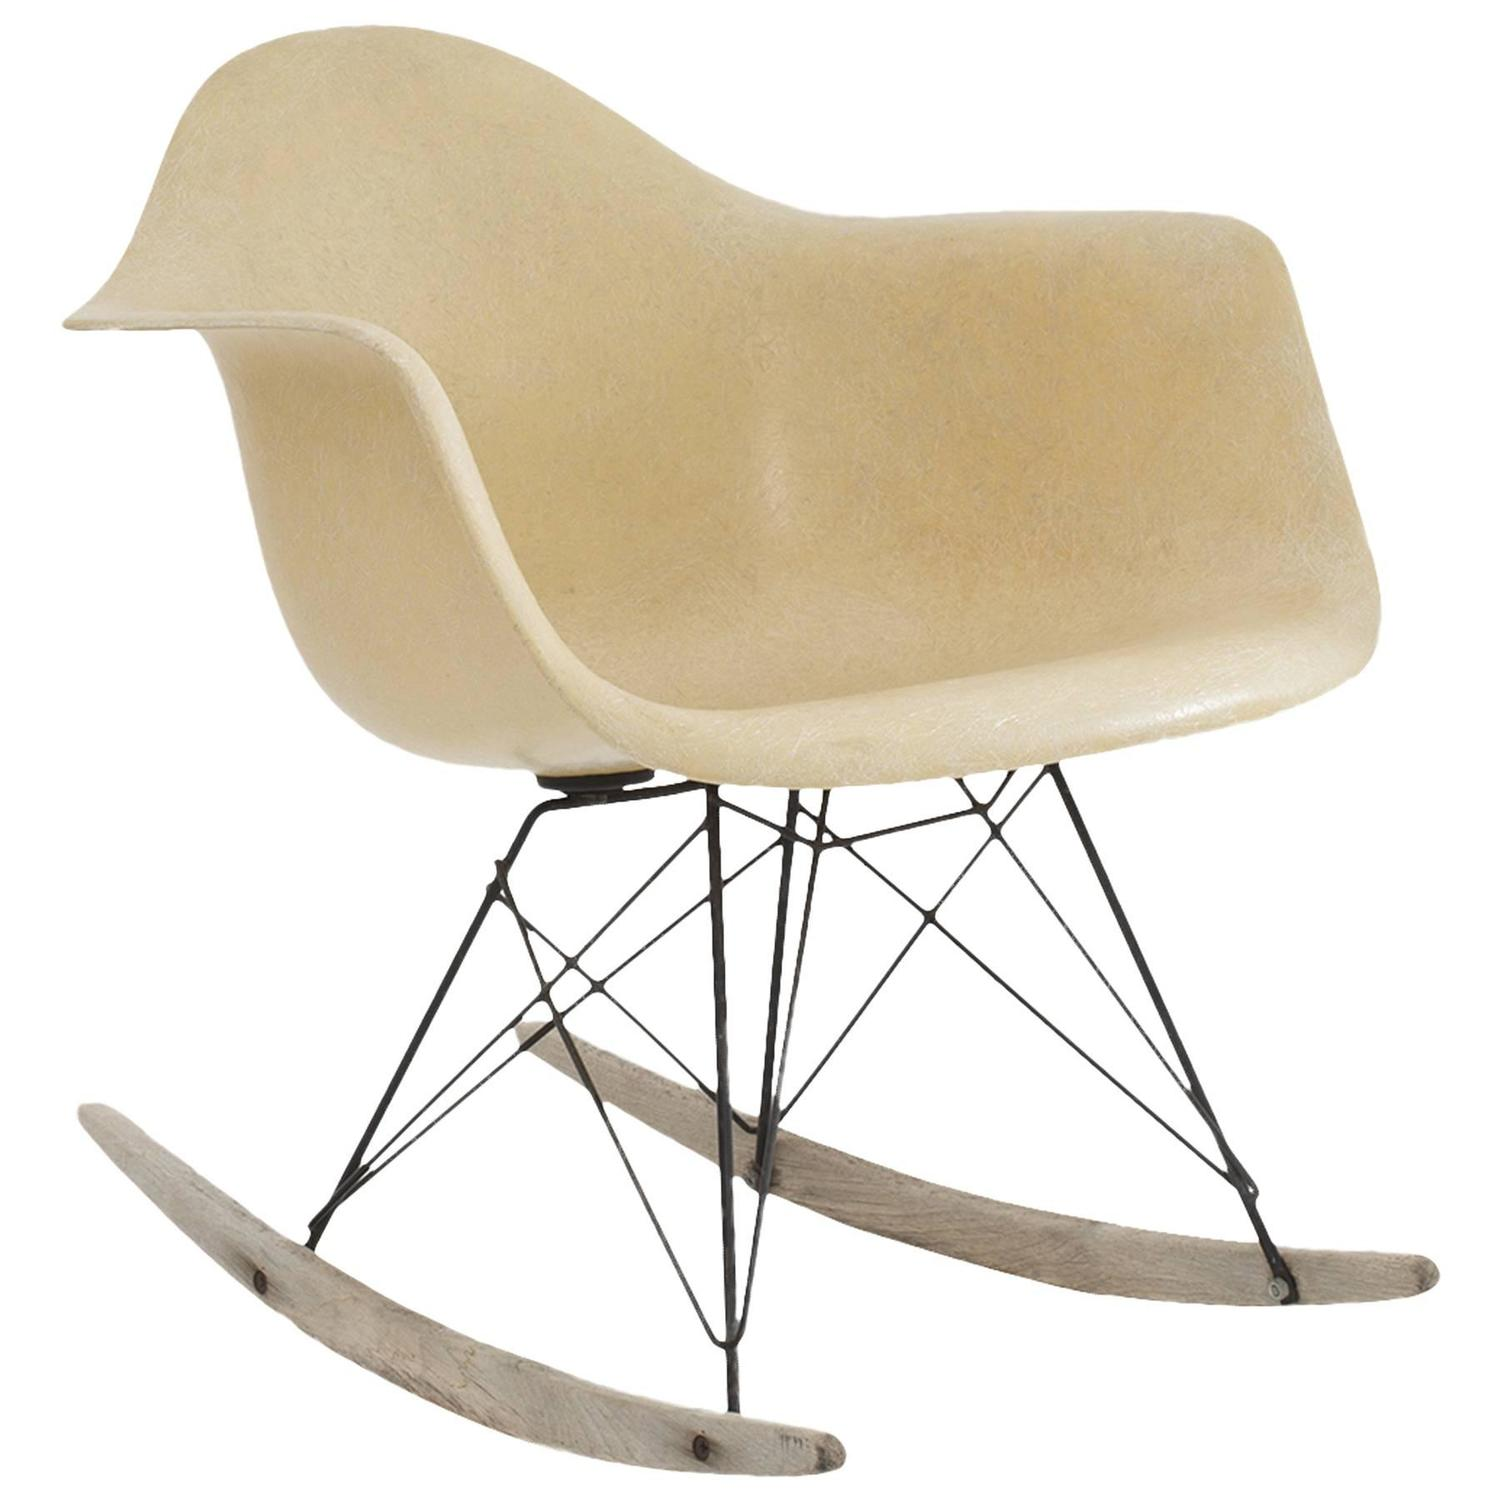 Early Production Eames Herman Miller RAR Rocking Chair at 1stdibs